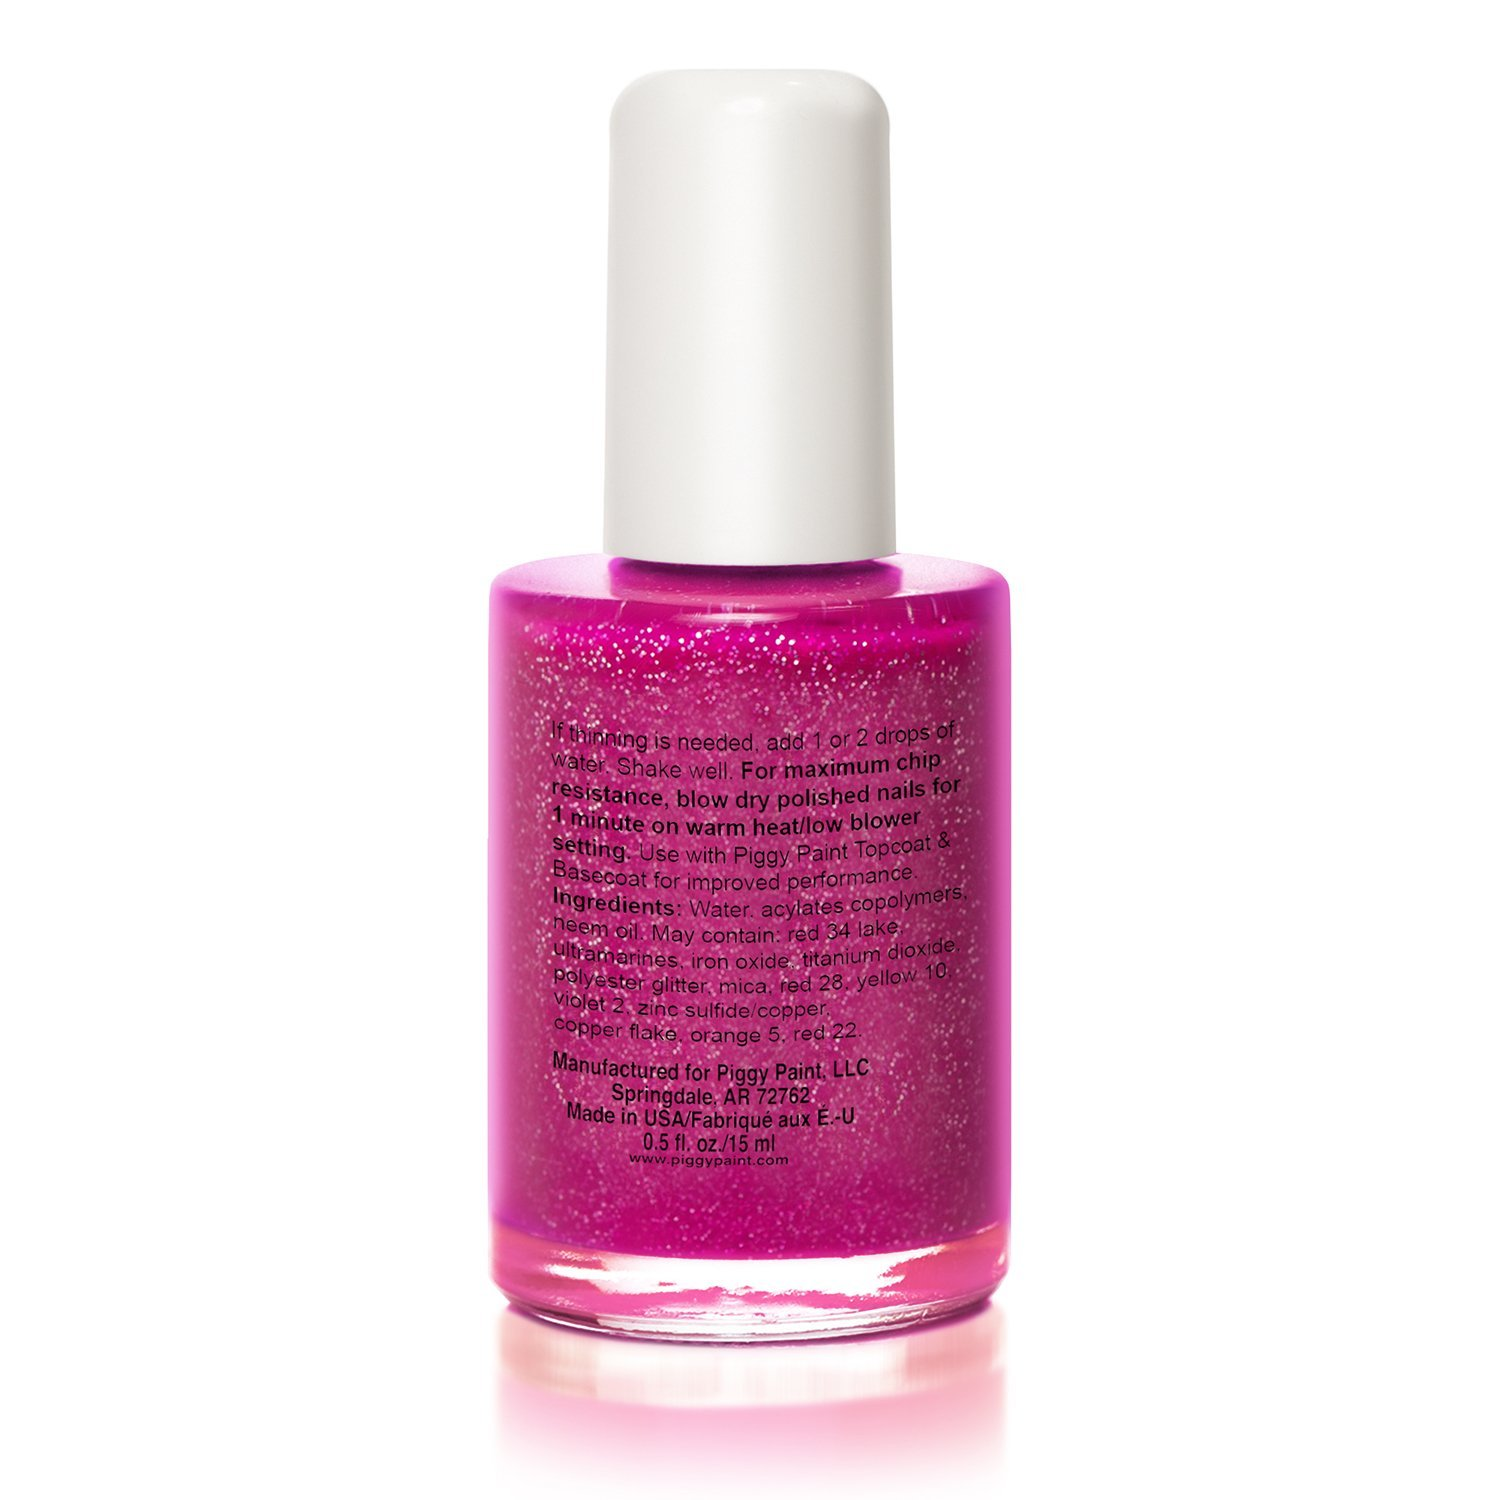 Amazon.com : Piggy Paint 100% Non-toxic Girls Nail Polish - Safe, Chemical  Free Low Odor for Kids, Glamour Girl : Baby Nail Polish : Beauty